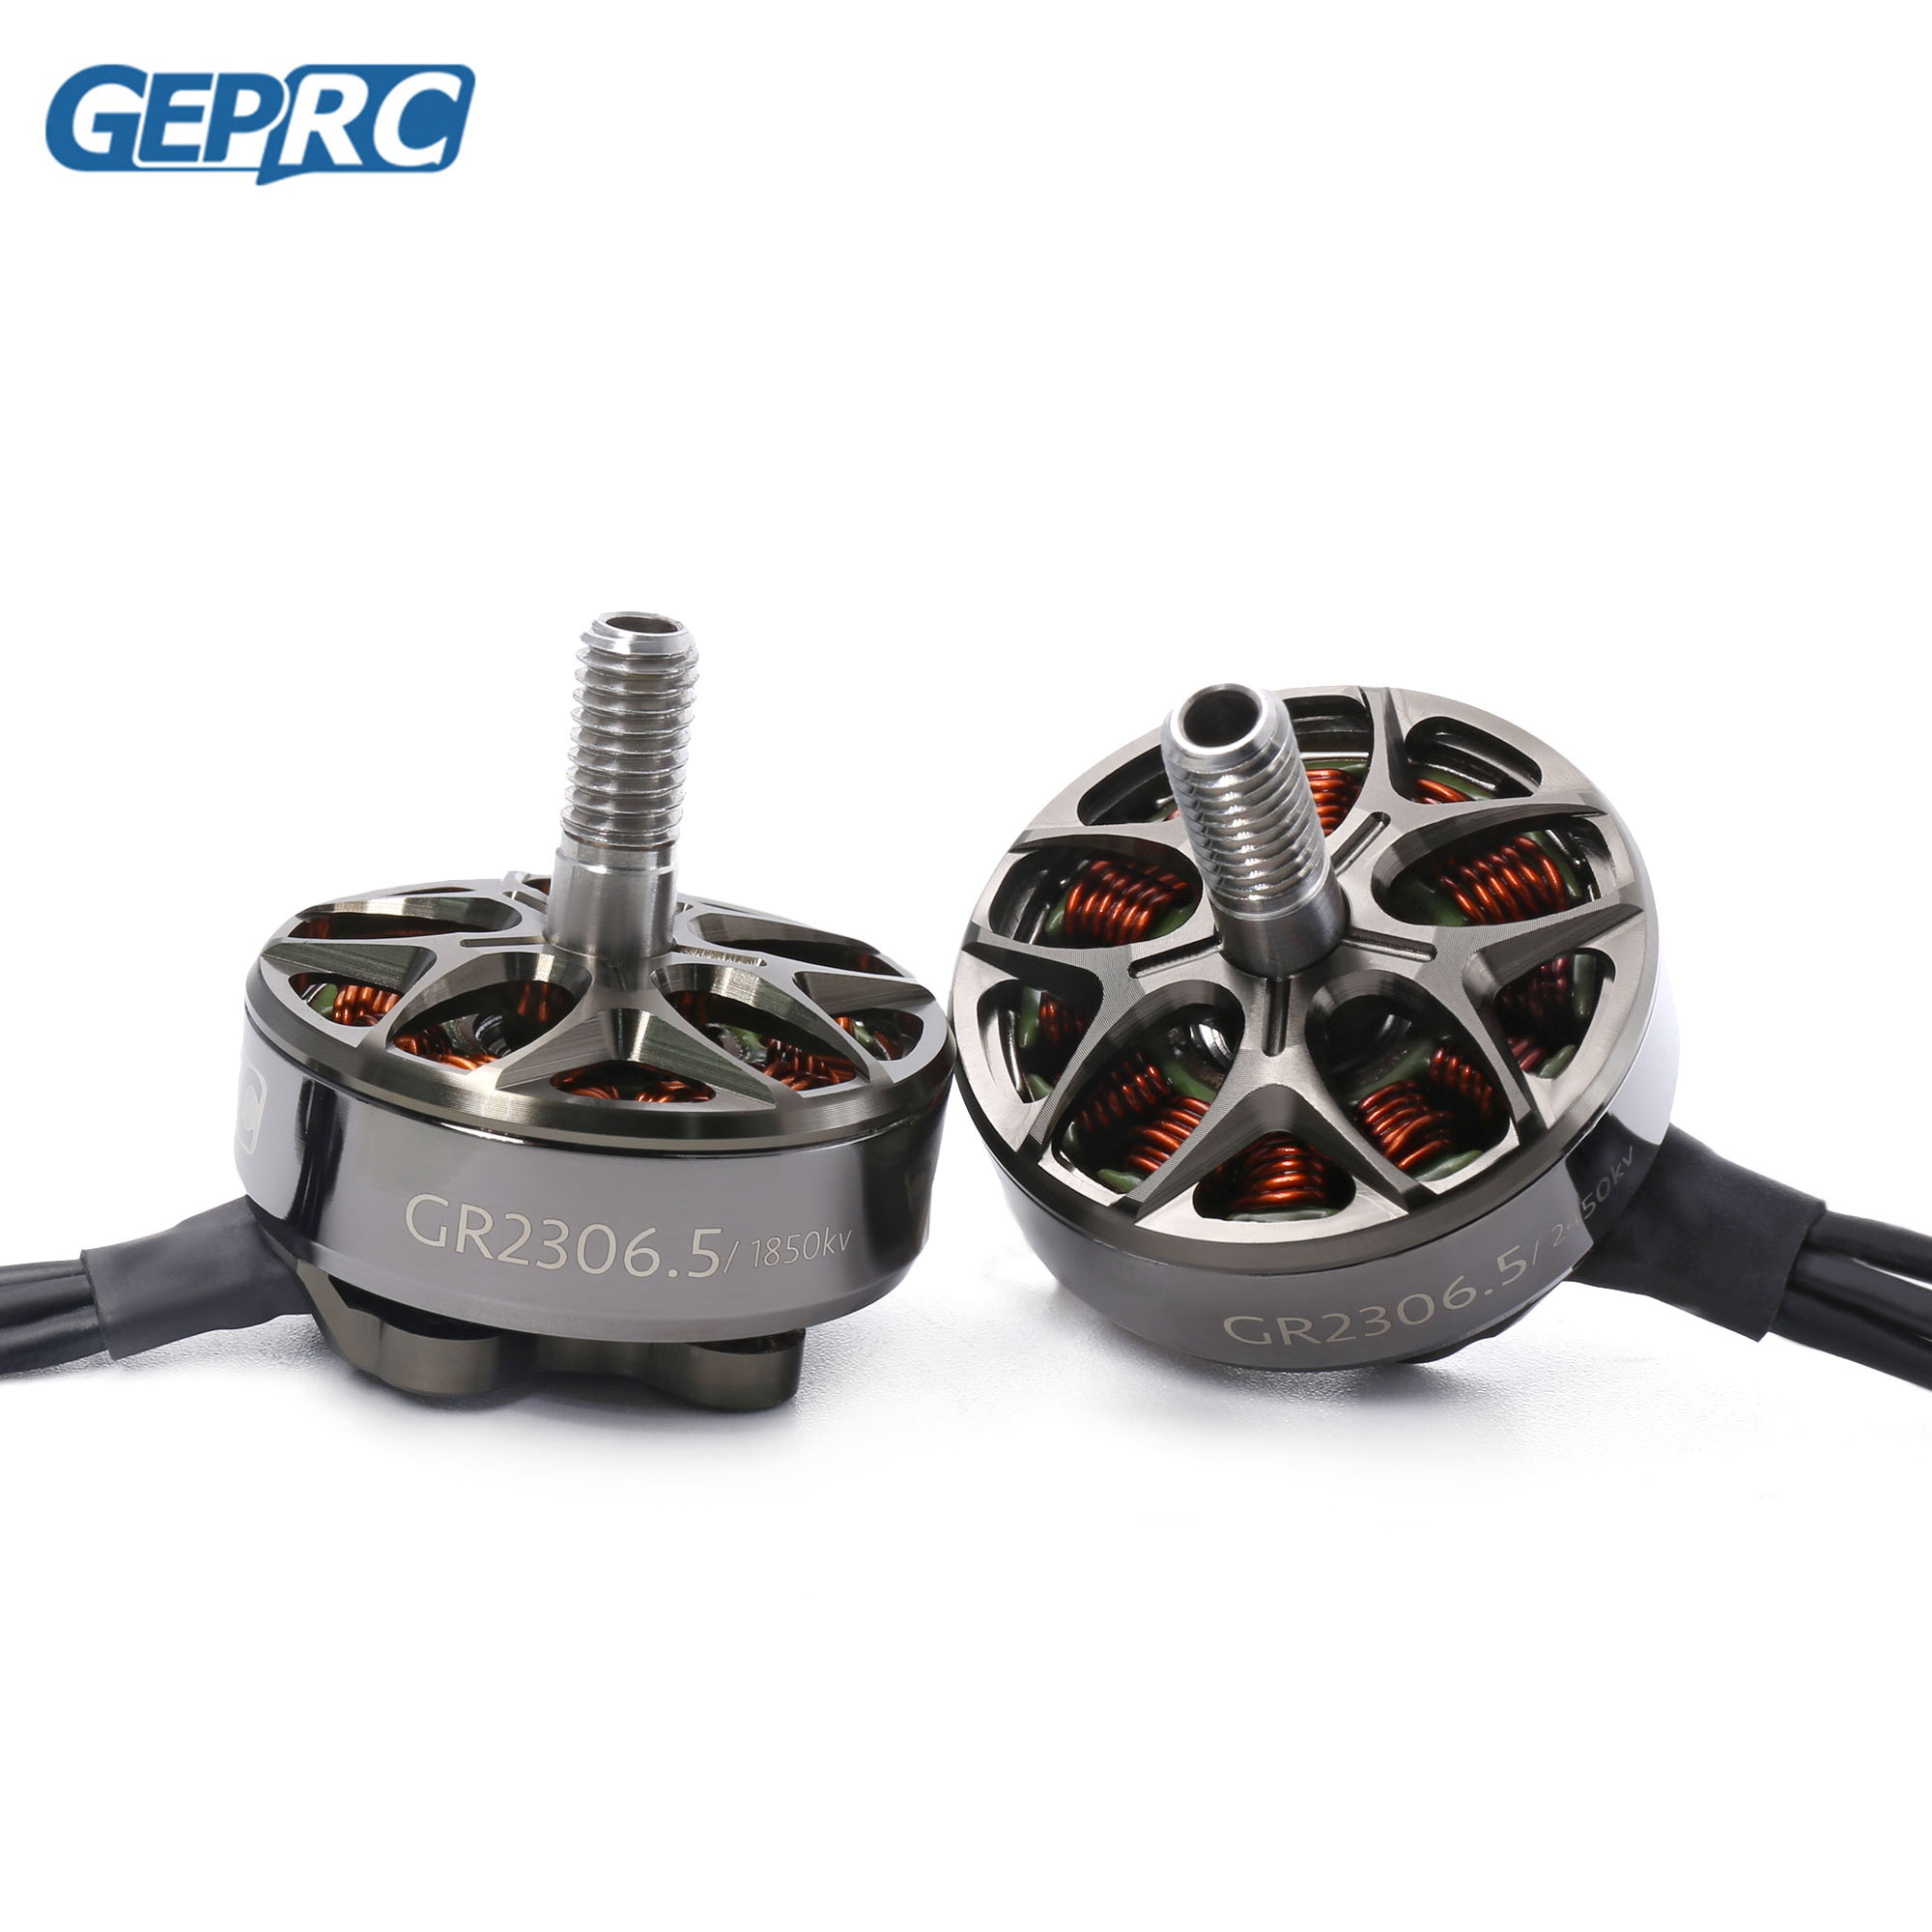 GEPRC GEP-GR2306.5 1350KV-6S 1850KV-6S 2450KV-4S Violence <font><b>Brushless</b></font> Motor for <font><b>FPV</b></font> Racing <font><b>drone</b></font> Quacopter Accessories image